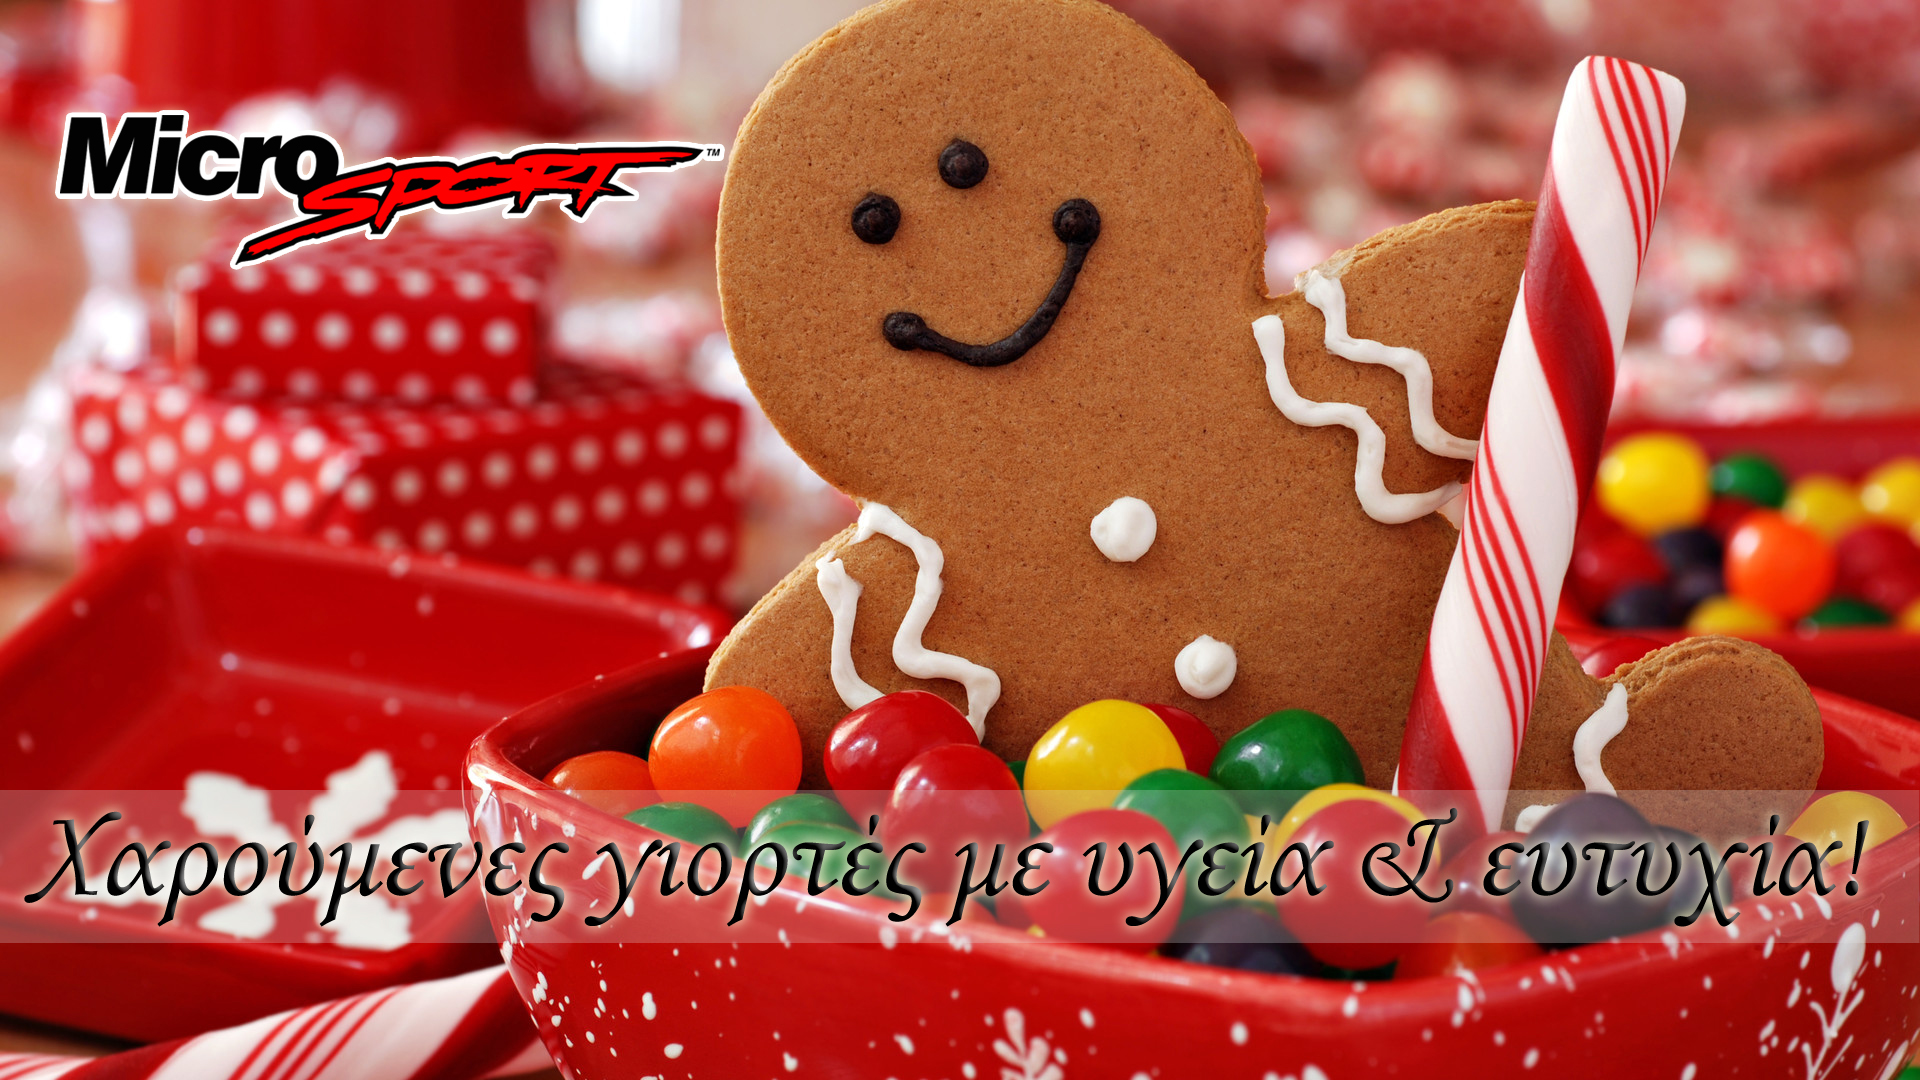 microsport_happy_holidays